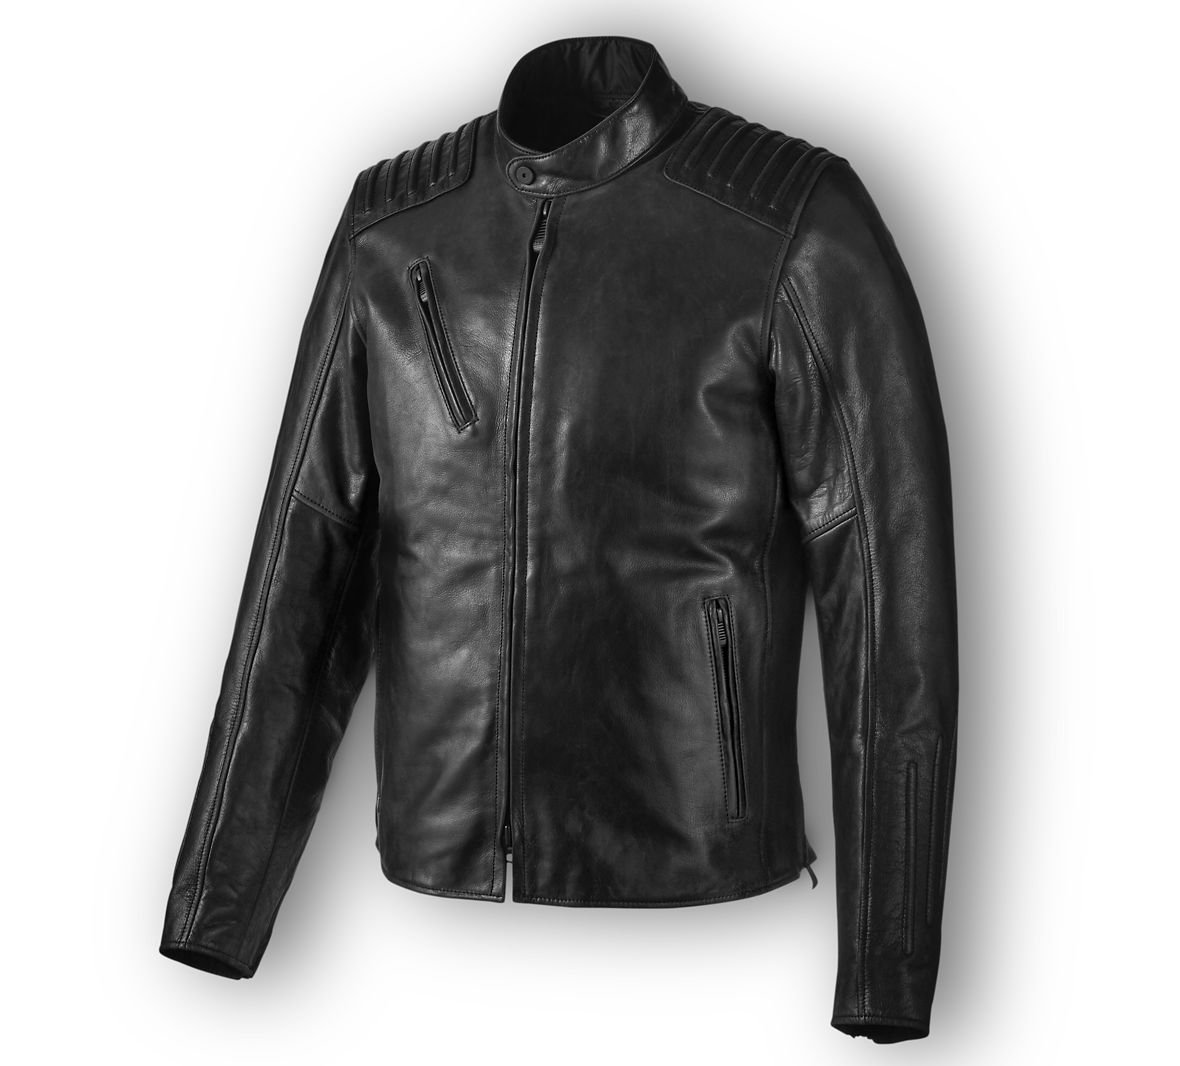 Check Out the New H-D Moto Apparel from Harley-Davidson